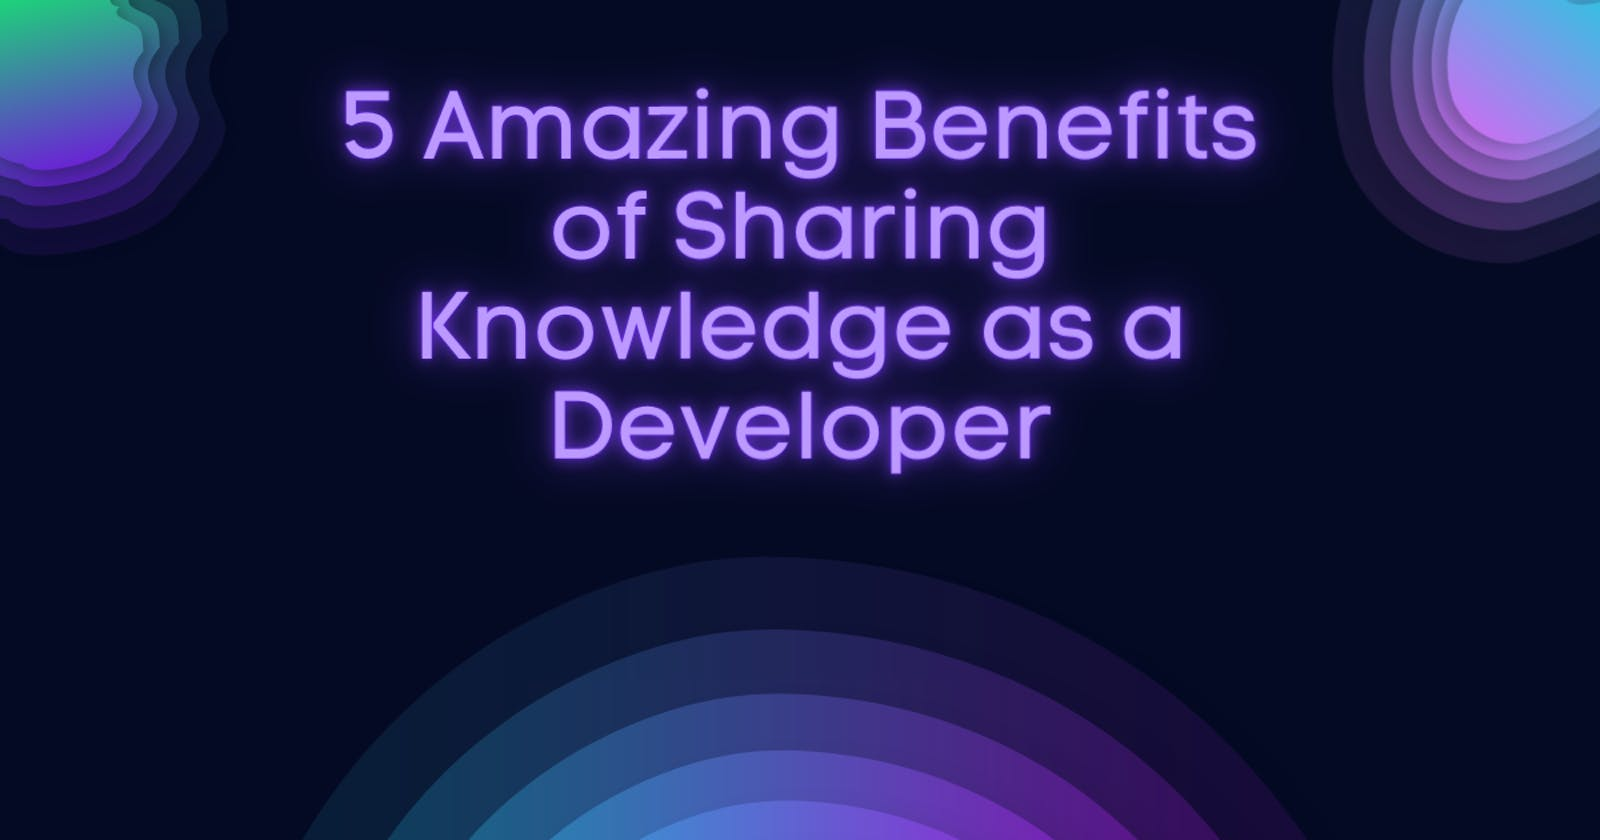 5 Amazing Benefits of Sharing Knowledge as a Developer